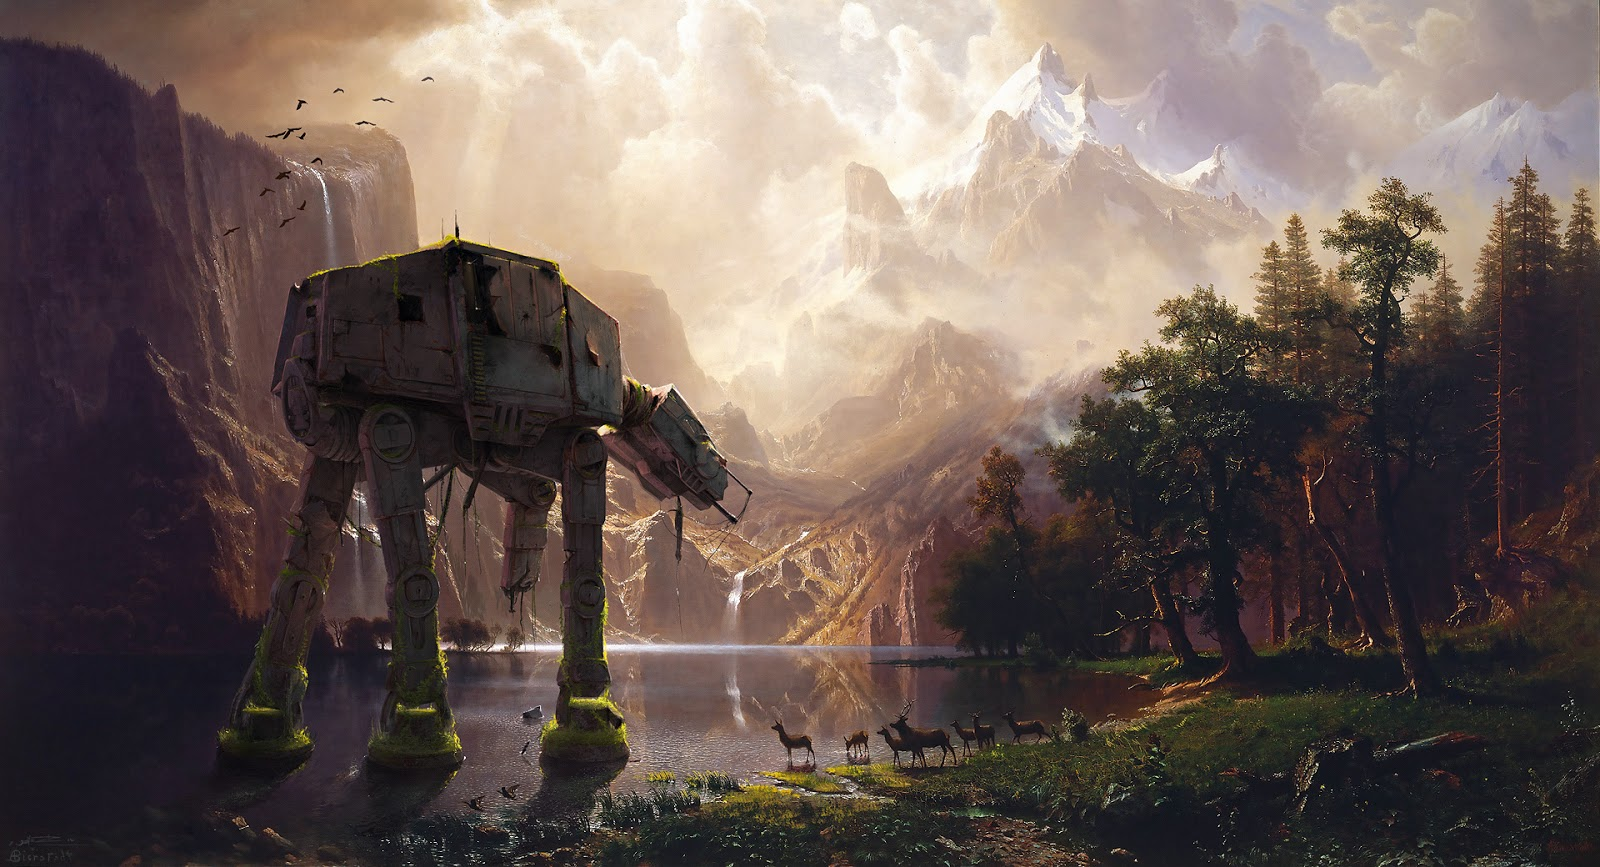 Digital Overpainting representing an AT-AT Walker in an Albert Bierstadt painting called Among the Sierra NEvada